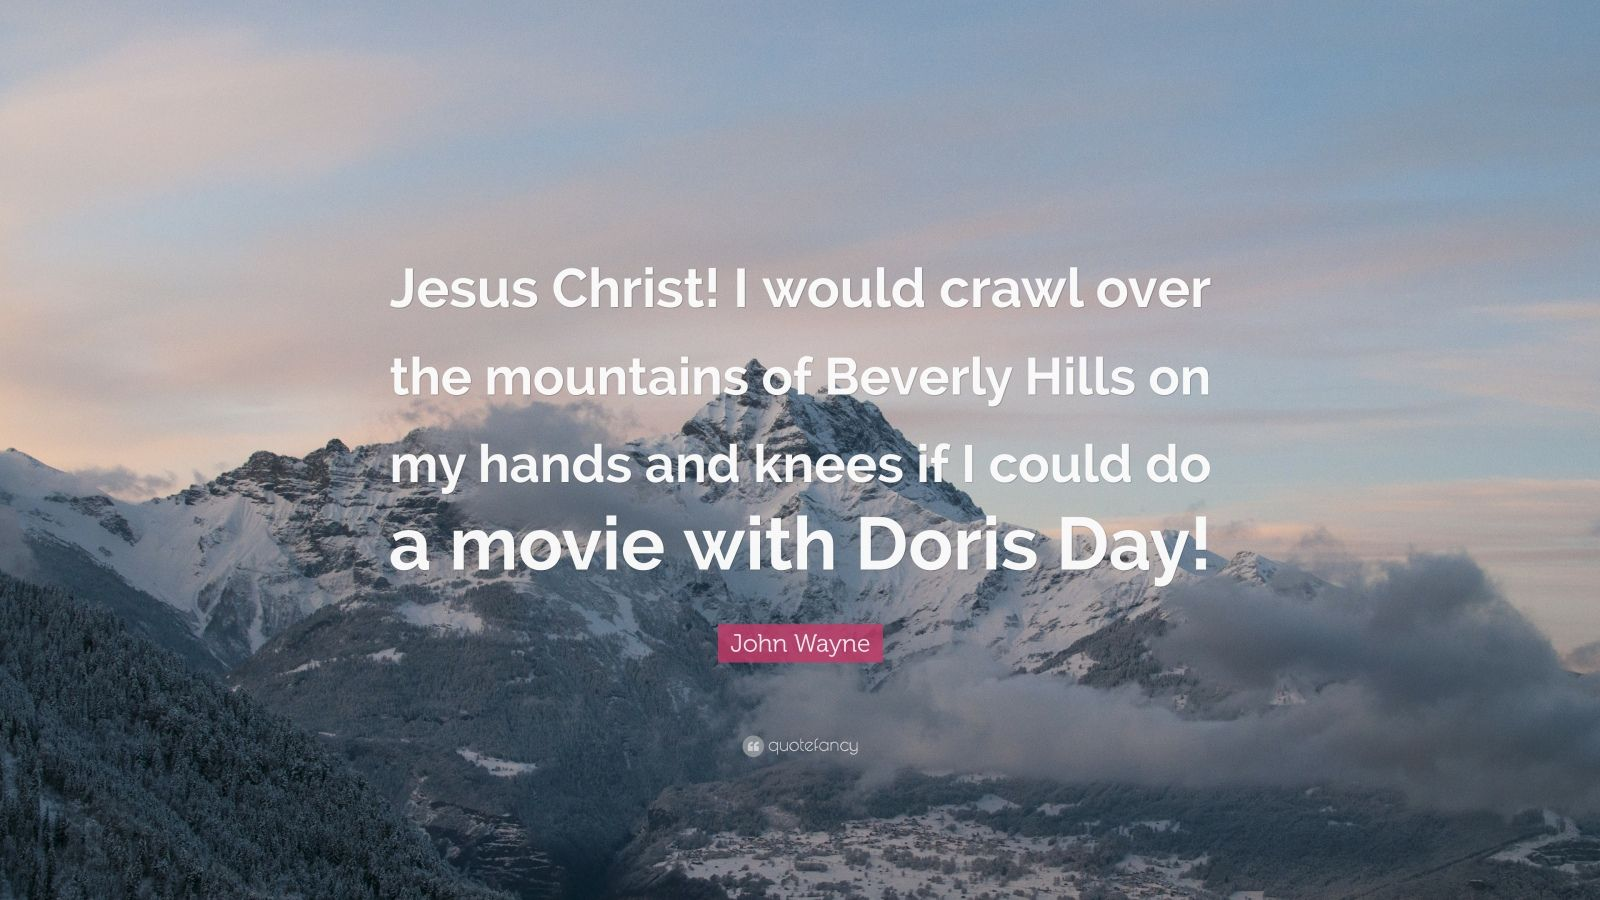 """John Wayne Quote: """"Jesus Christ! I would crawl over the mountains of Beverly Hills on my hands and knees if I could do a movie with Doris Day!"""""""